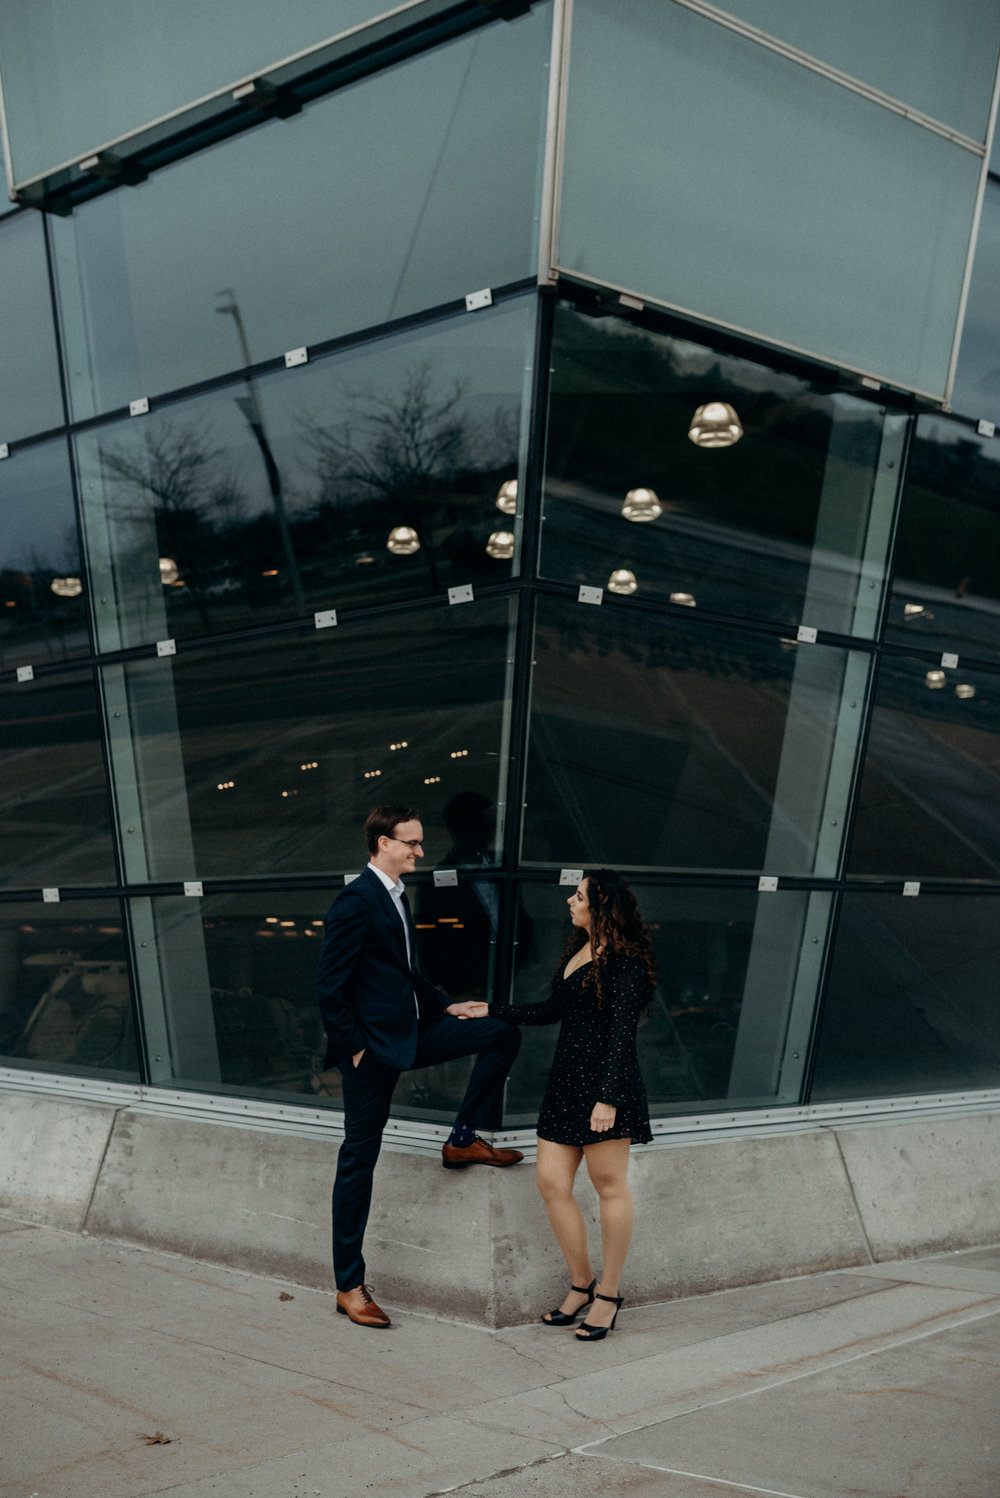 War Museum Engagement Picture Mocha Tree Studios Ottawa Toronto Montreal Wedding and Engagement Photographer and Videographer Dark Moody Intimate Authentic Modern Romantic Cinematic Best Candid 3